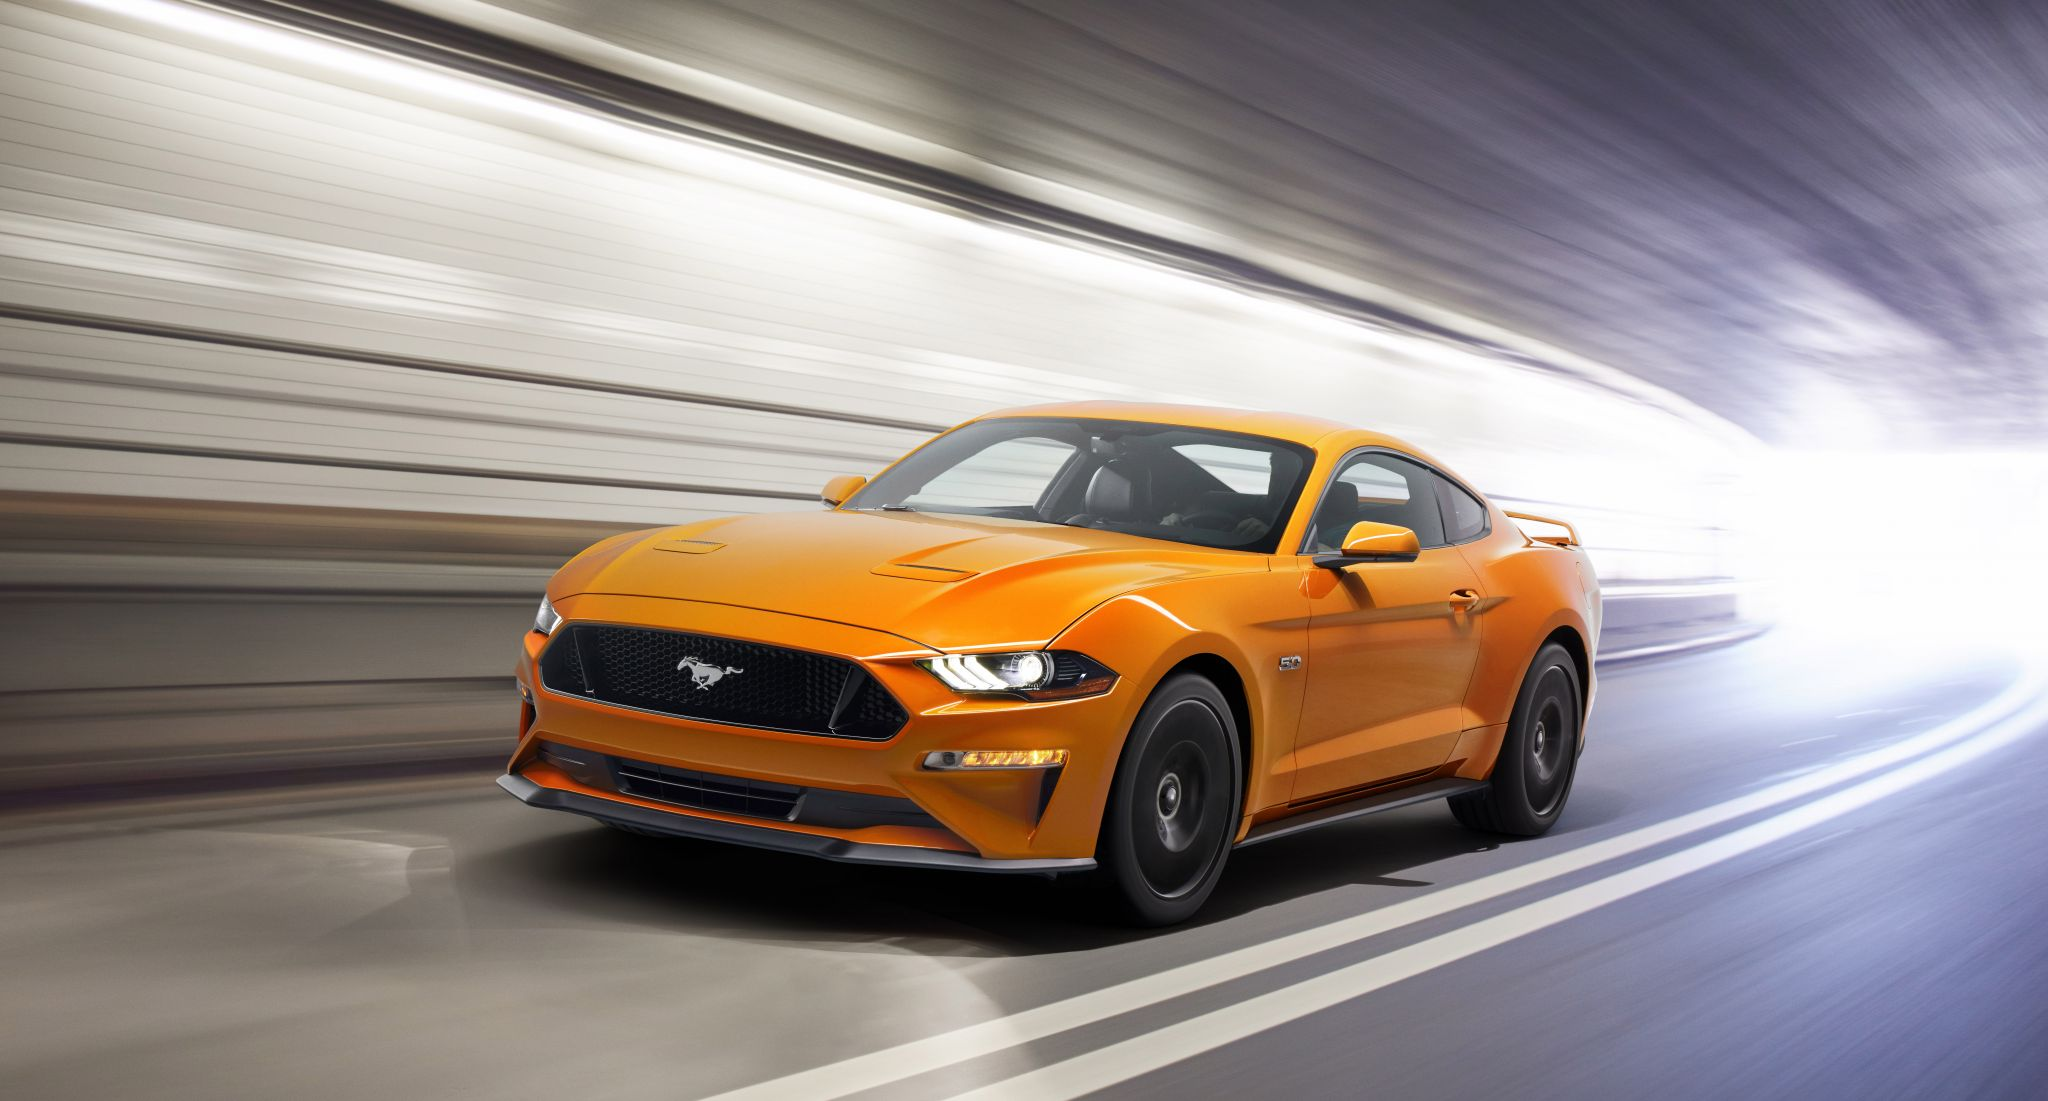 Ford's new 2018 Mustang comes with more technology, customization than ever